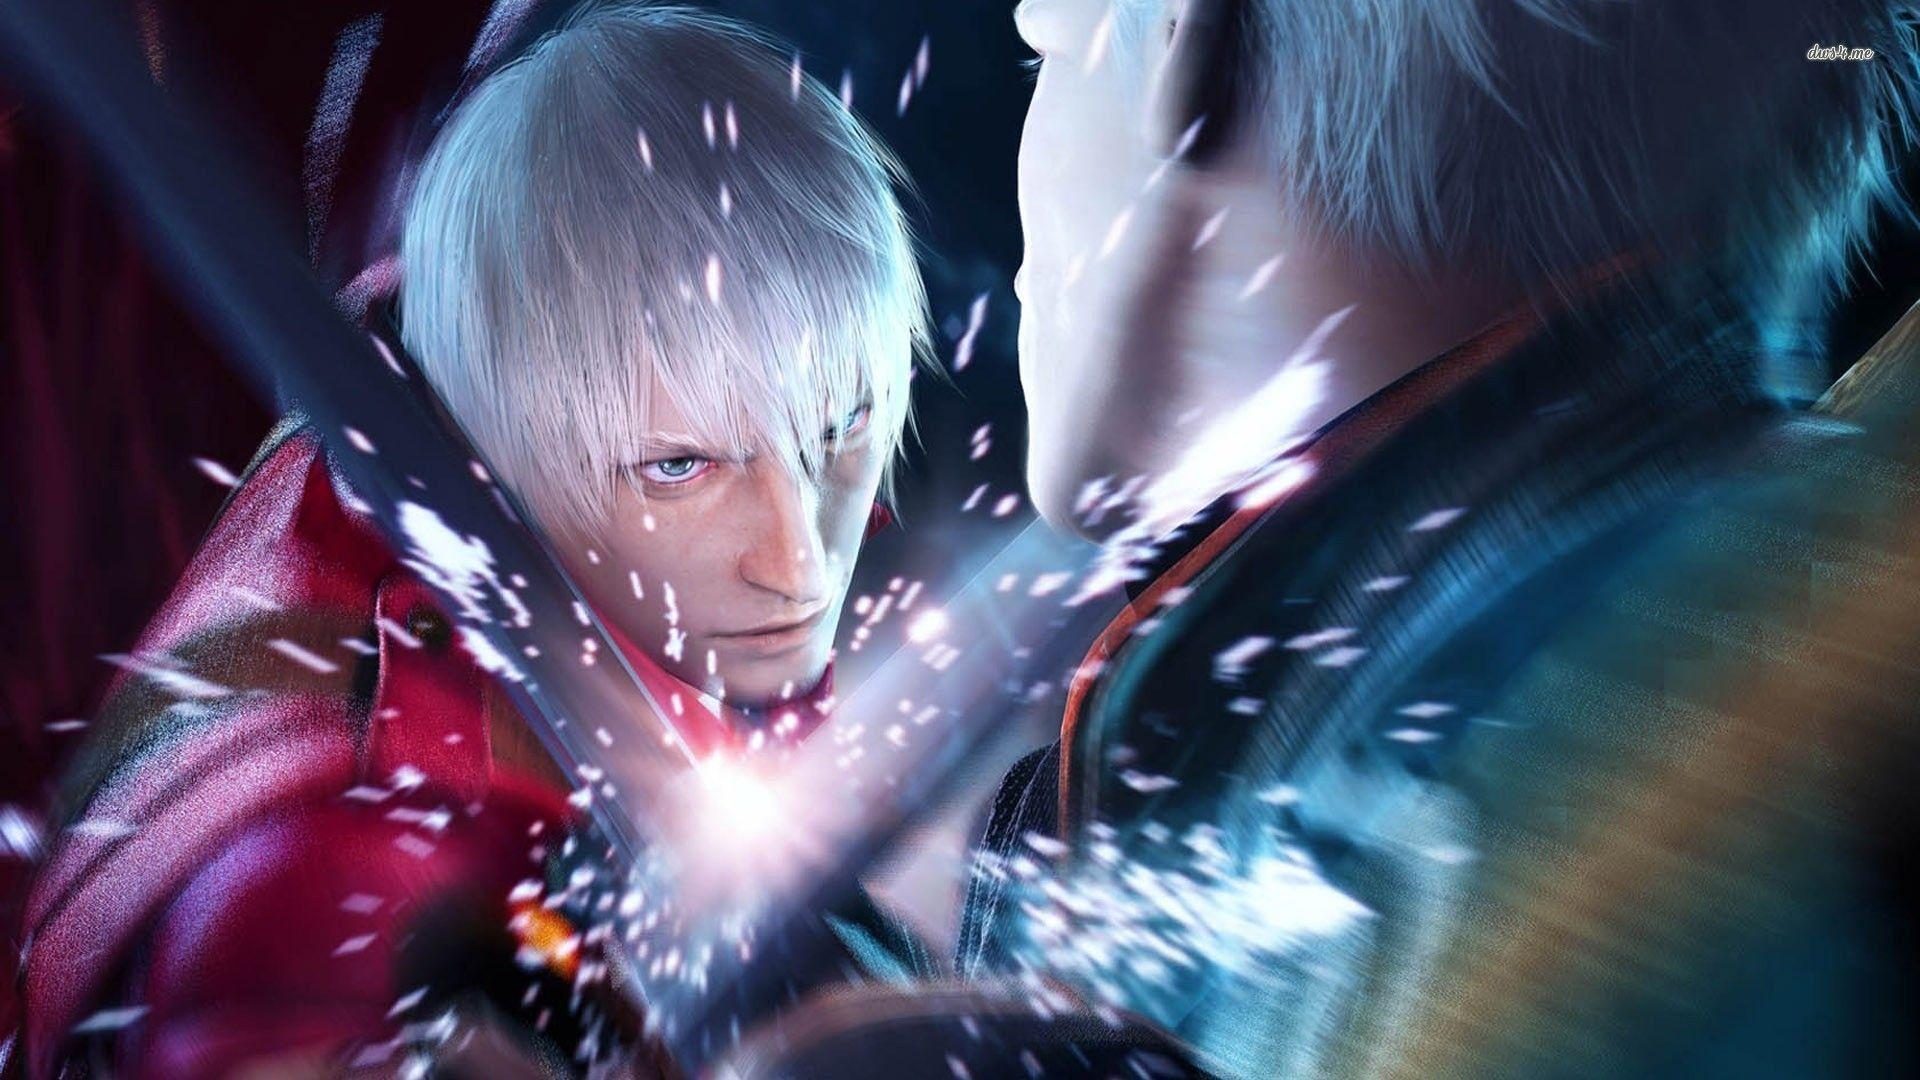 wallpapers devil may cry - photo #31